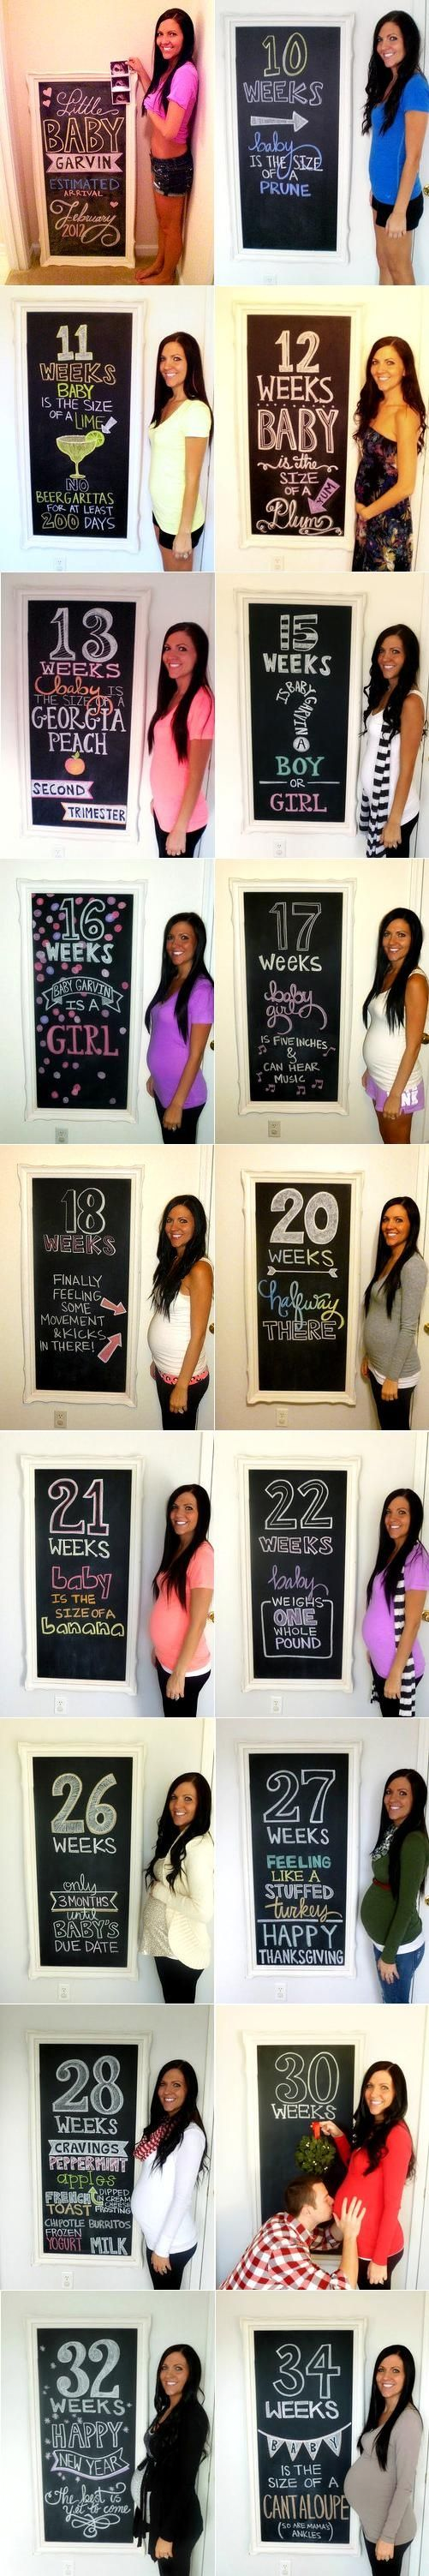 Cute pregnancy photo diary montage calendar chalkboard Toni Kami ~•❤• Bébé •❤•~ Pregnancy photography DIY Little Baby Garvin Love this blog